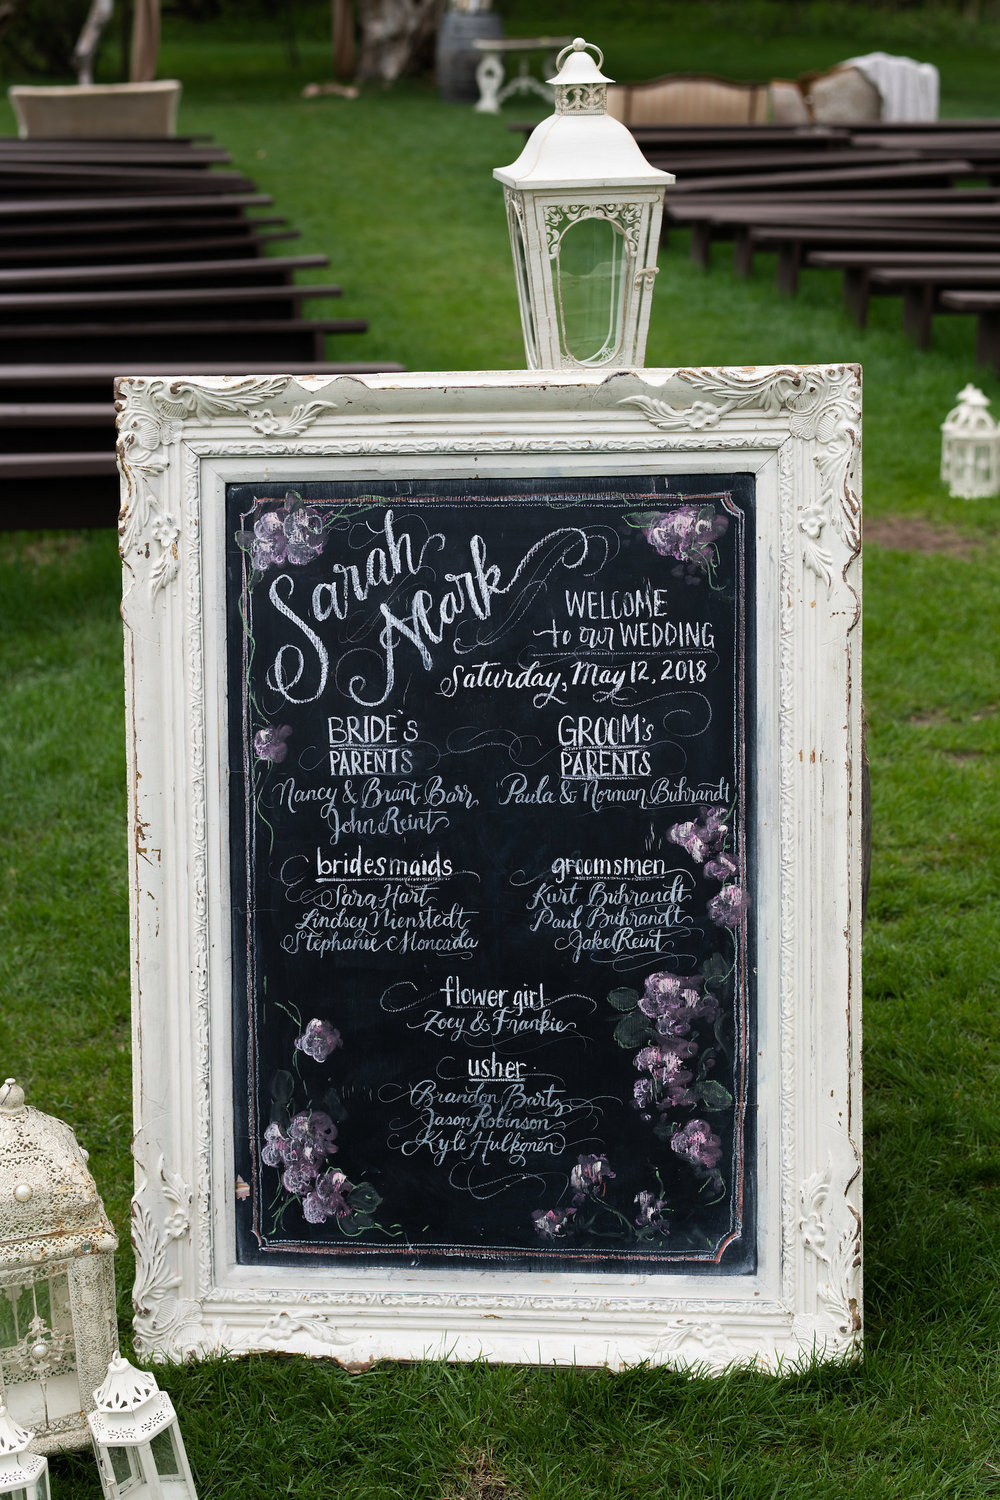 Sarah and Mark | Hope Glen Farm | Kelly Birch Photo | Sixpence Events & Planning wedding planning in Minnesota | chalk board program in calligraphy with purple flowers